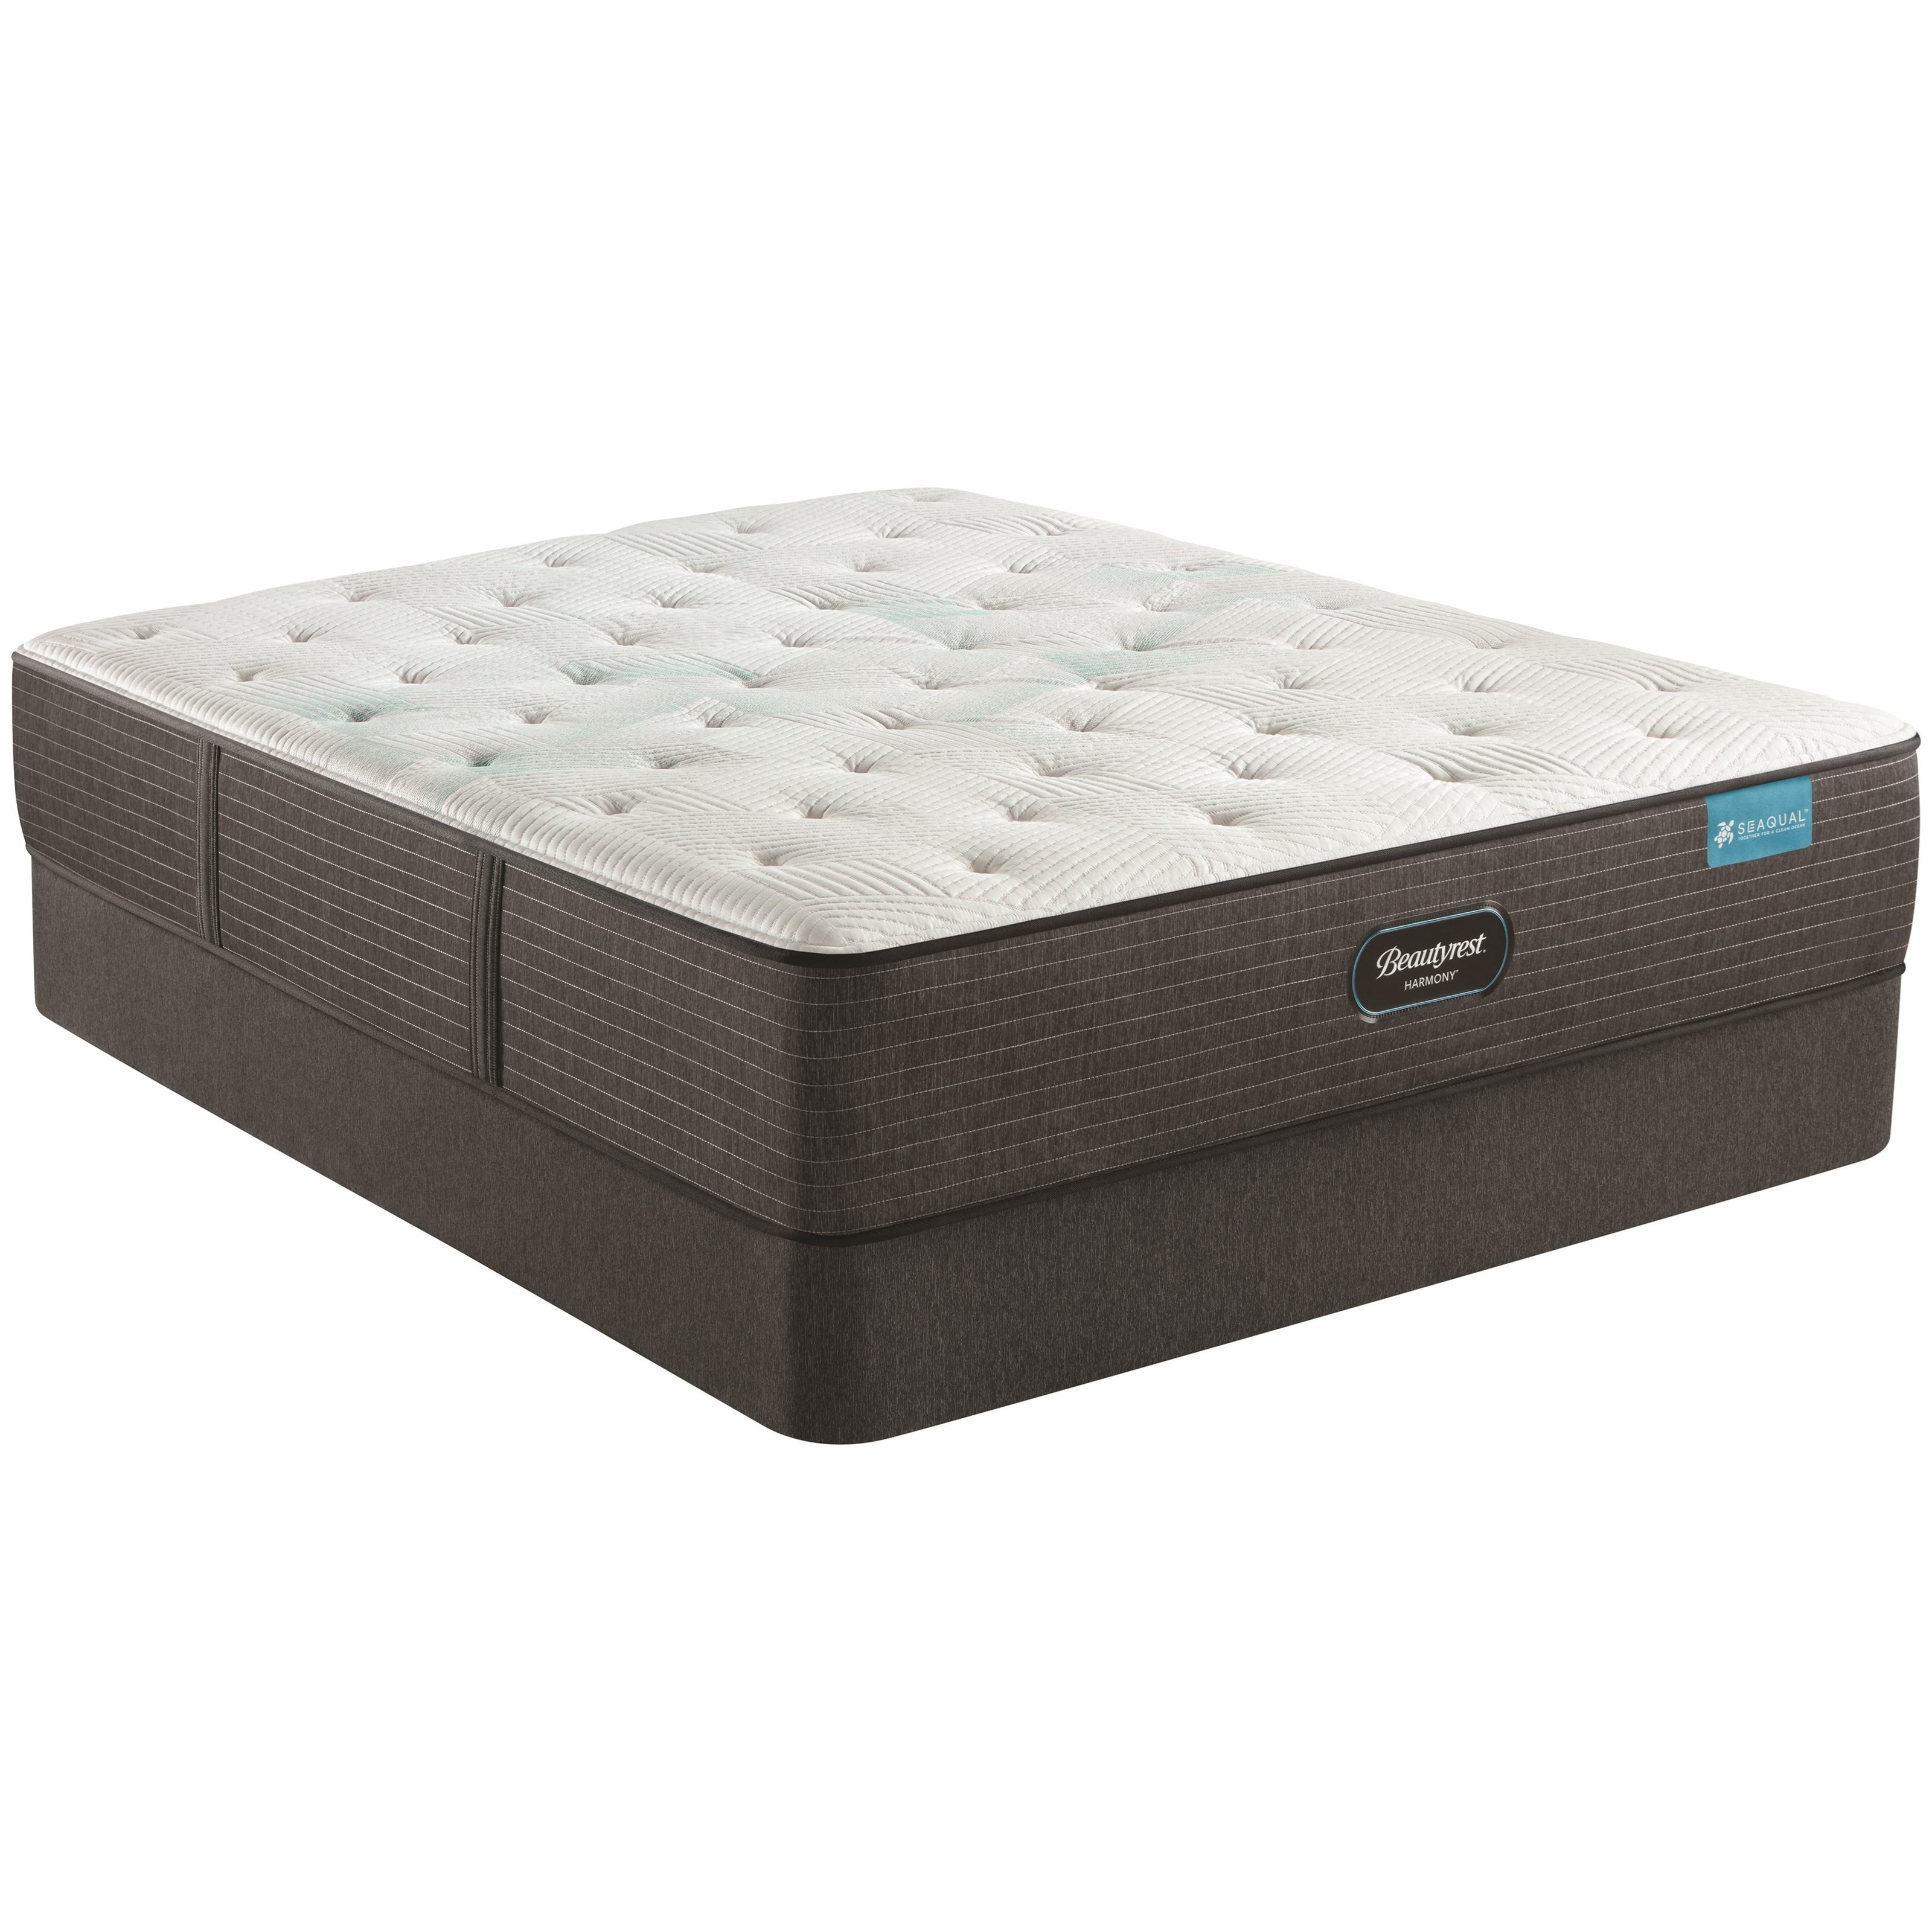 "Maui Series Med Firm King 12 1/2"" Medium Firm Mattress Set by Beautyrest at Darvin Furniture"